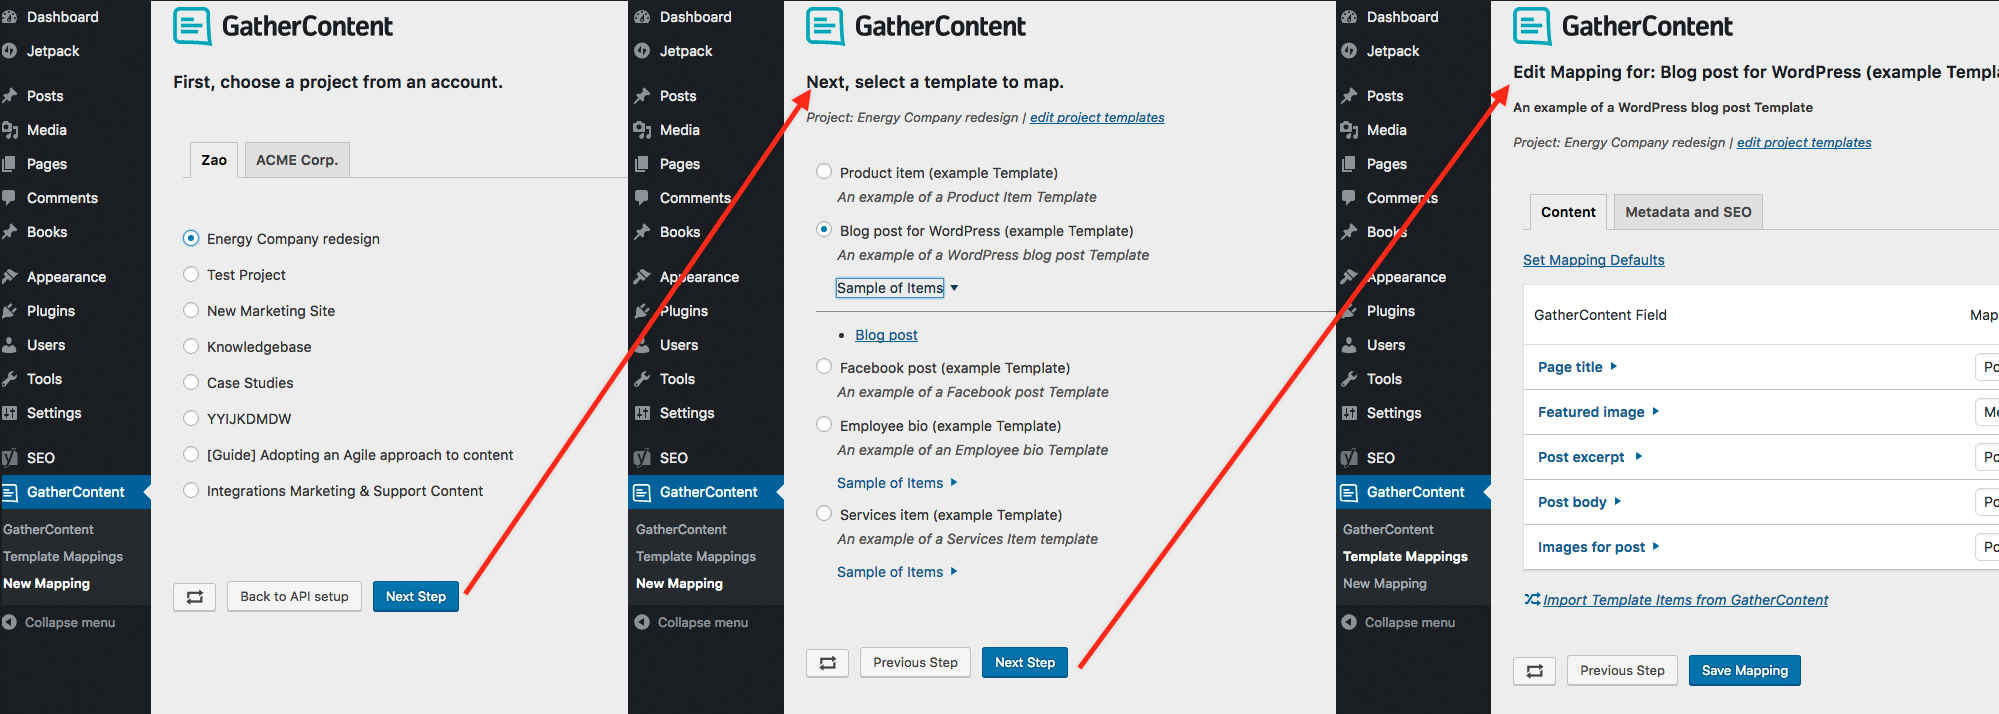 gathercontent-import screenshot 1